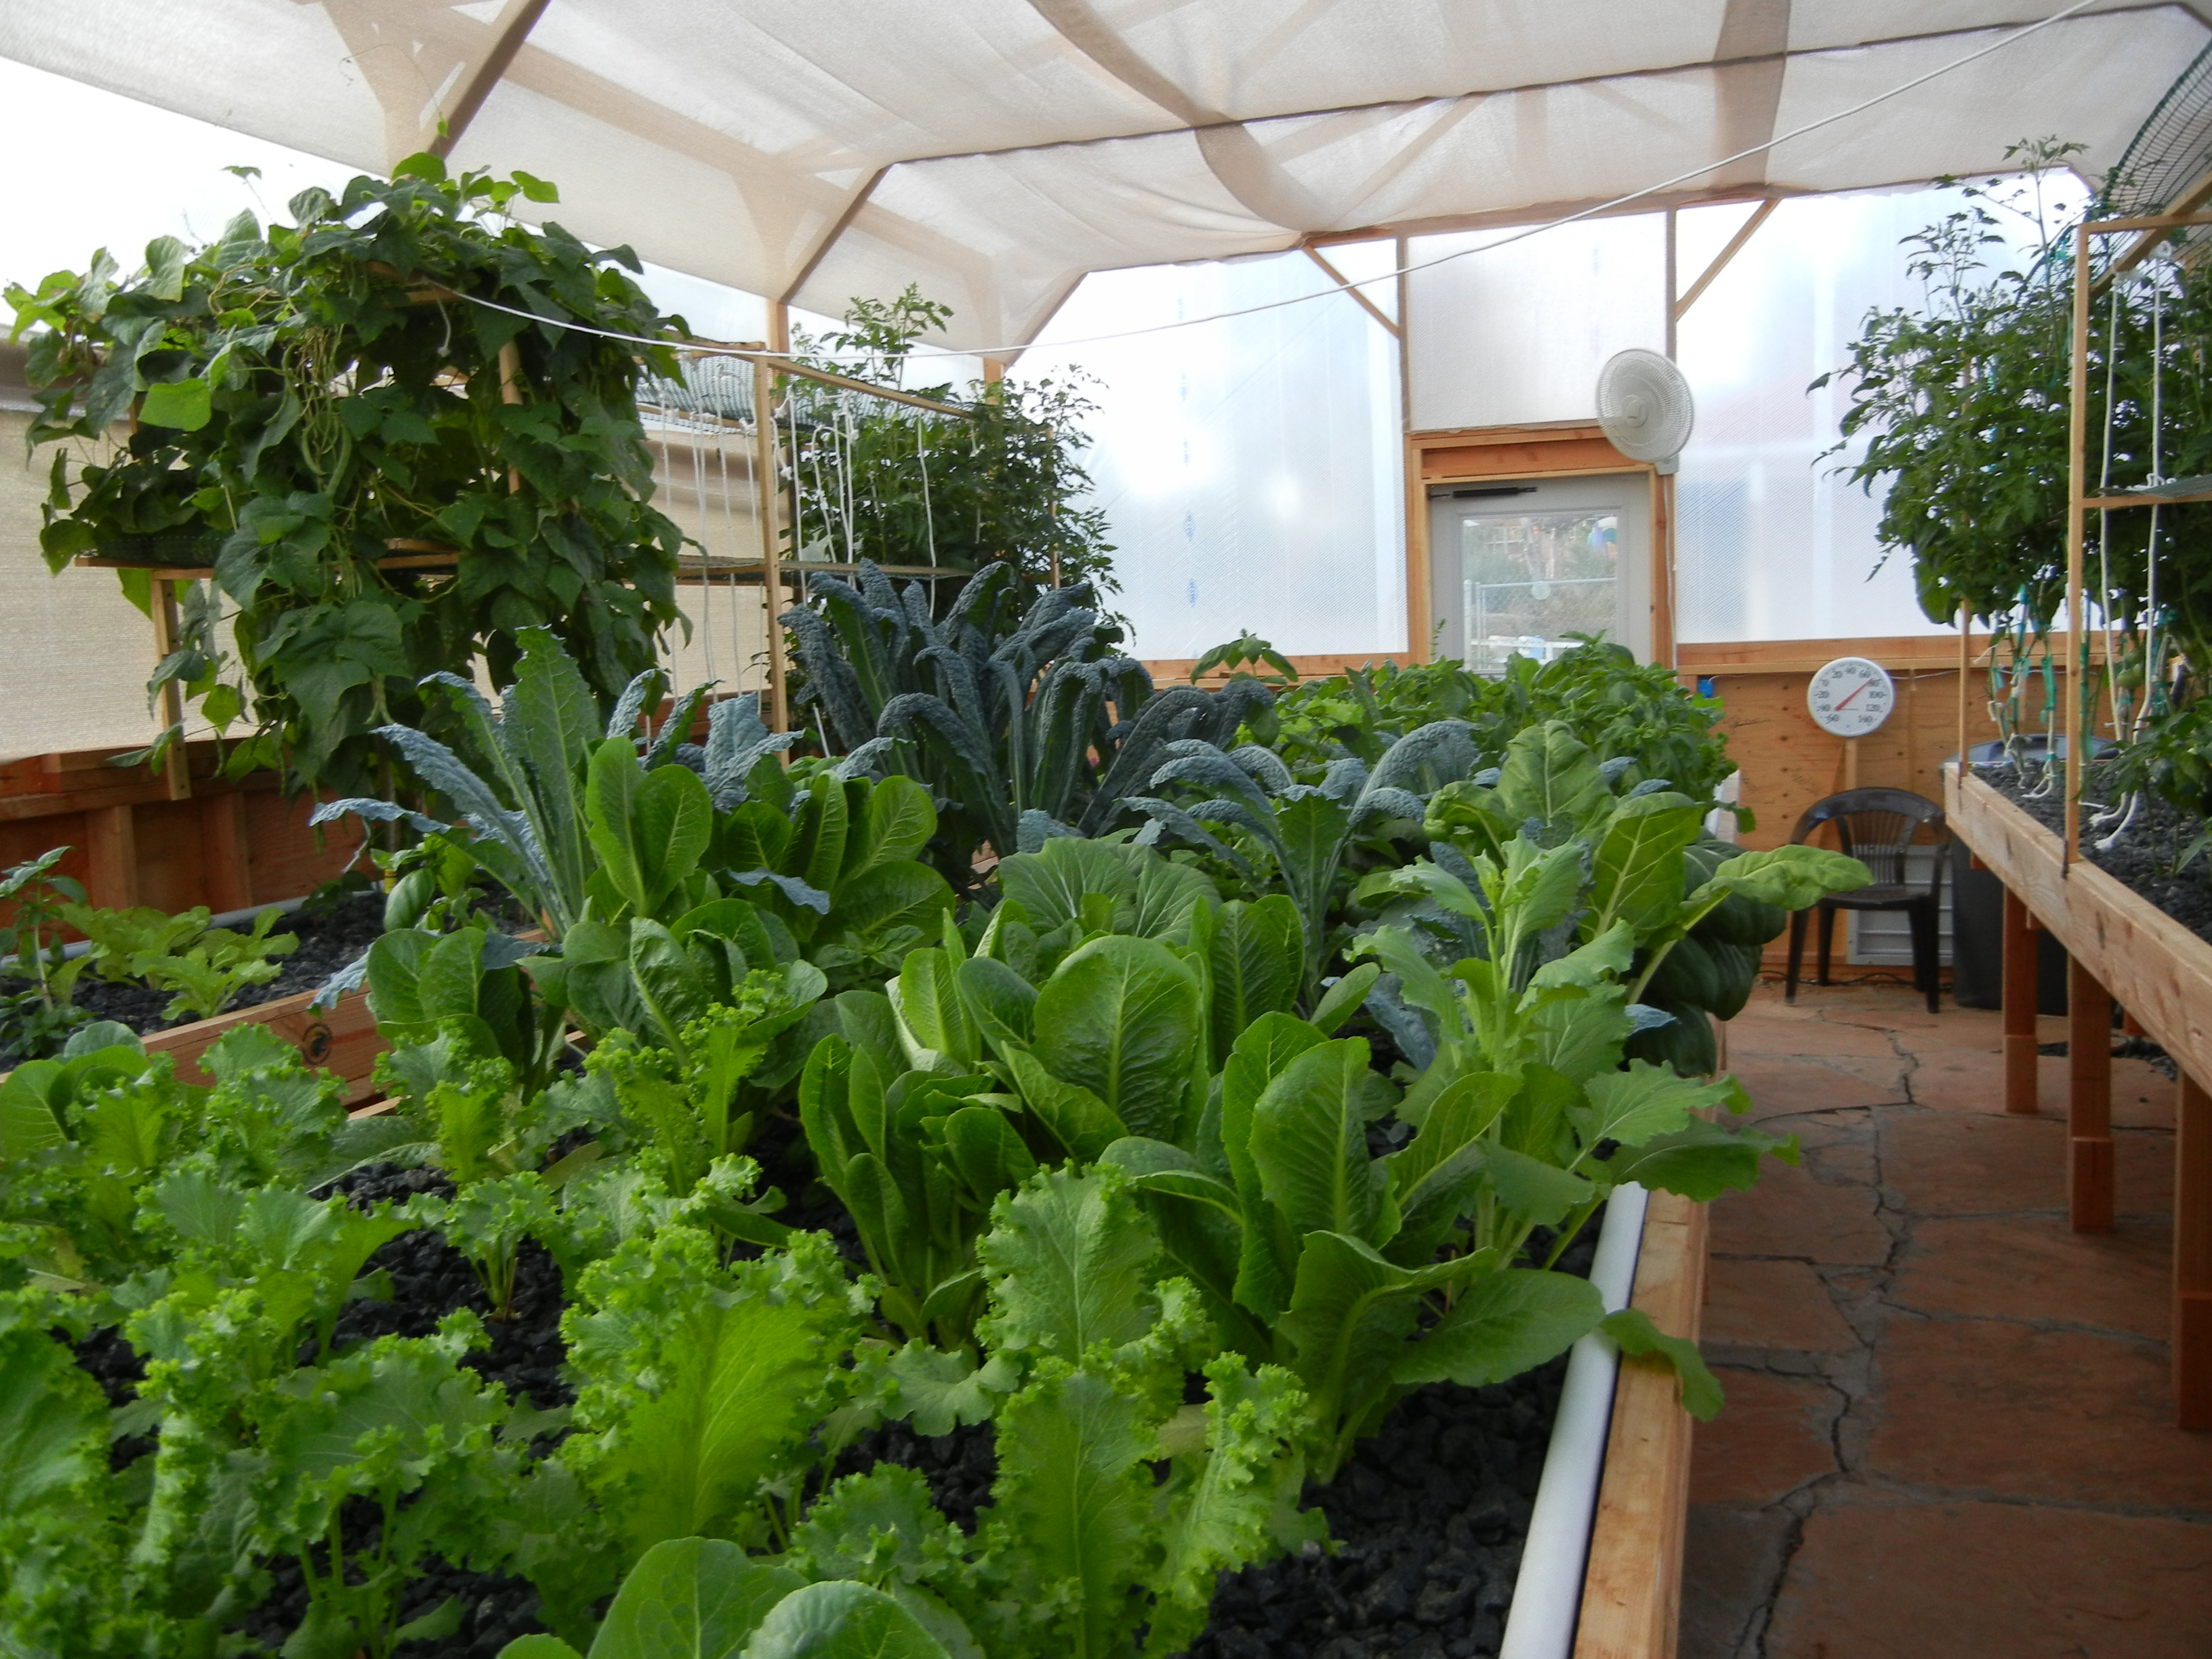 aquaponics in cold climates works great